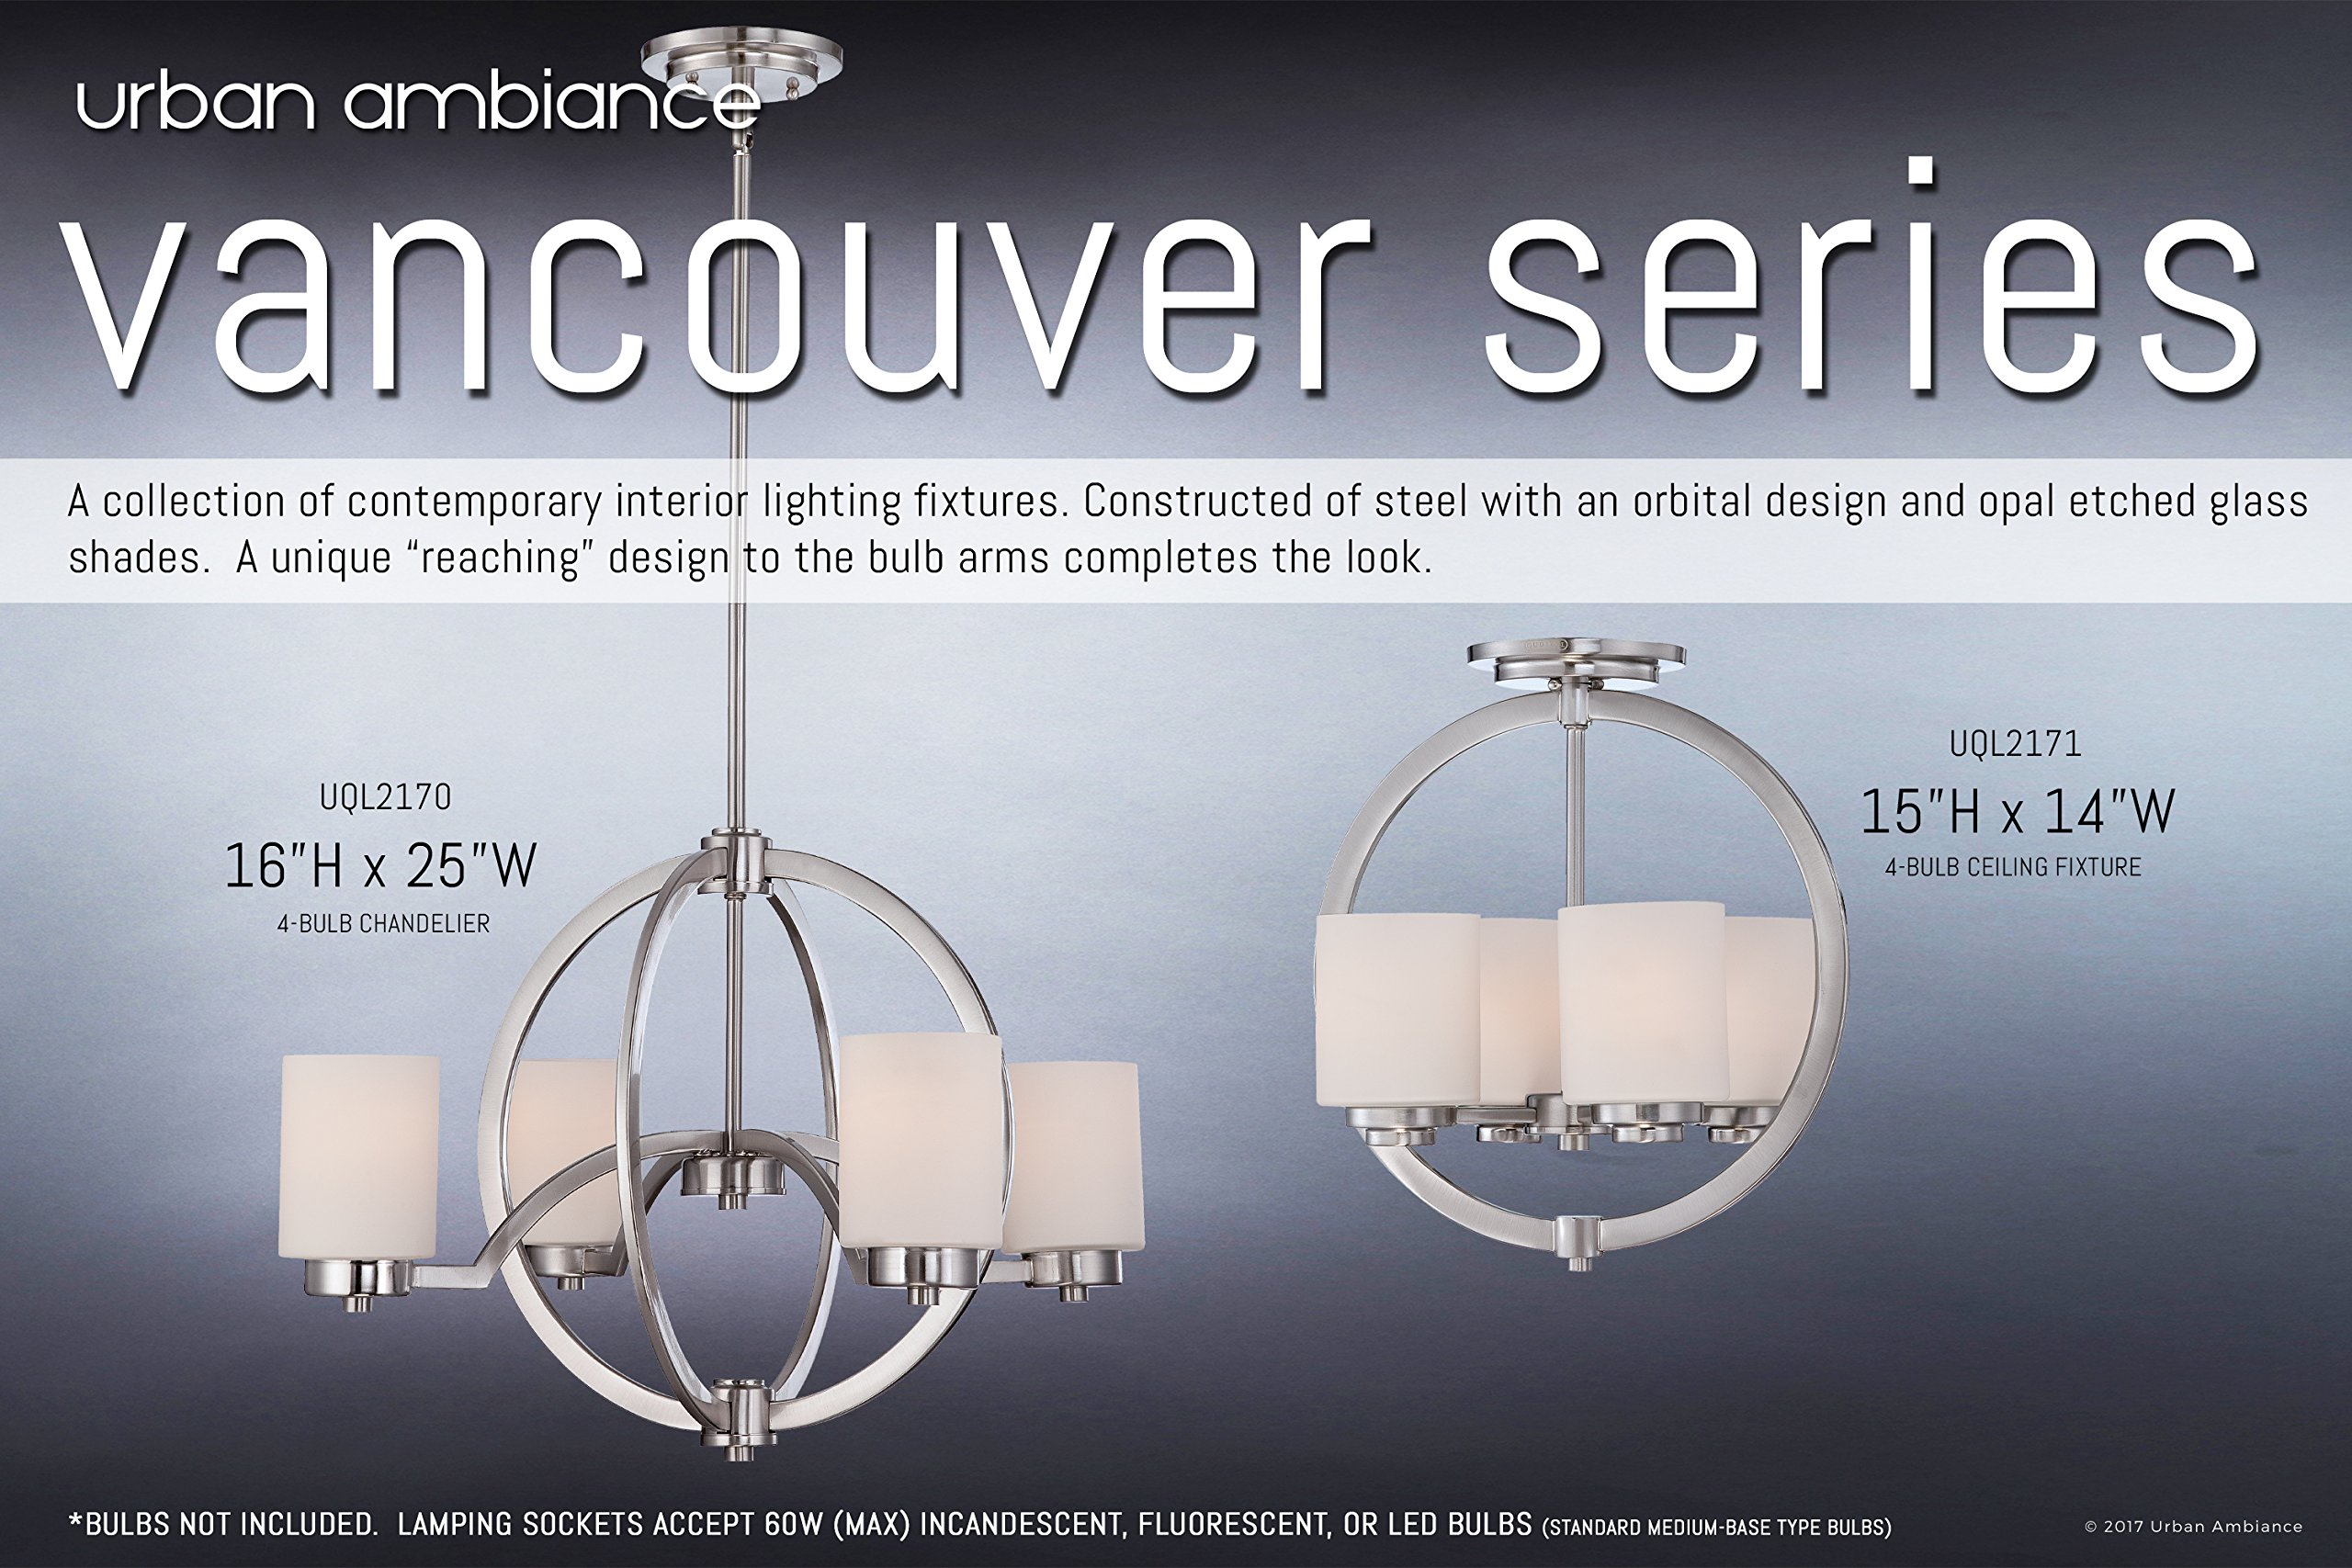 Luxury Contemporary Semi-Flush Ceiling Light, Medium Size: 15''H x 14''W, with Traditional Style Elements, Globe Design, Pretty Brushed Nickel Finish and Opal Etched Glass, UQL2171 by Urban Ambiance by Urban Ambiance (Image #1)